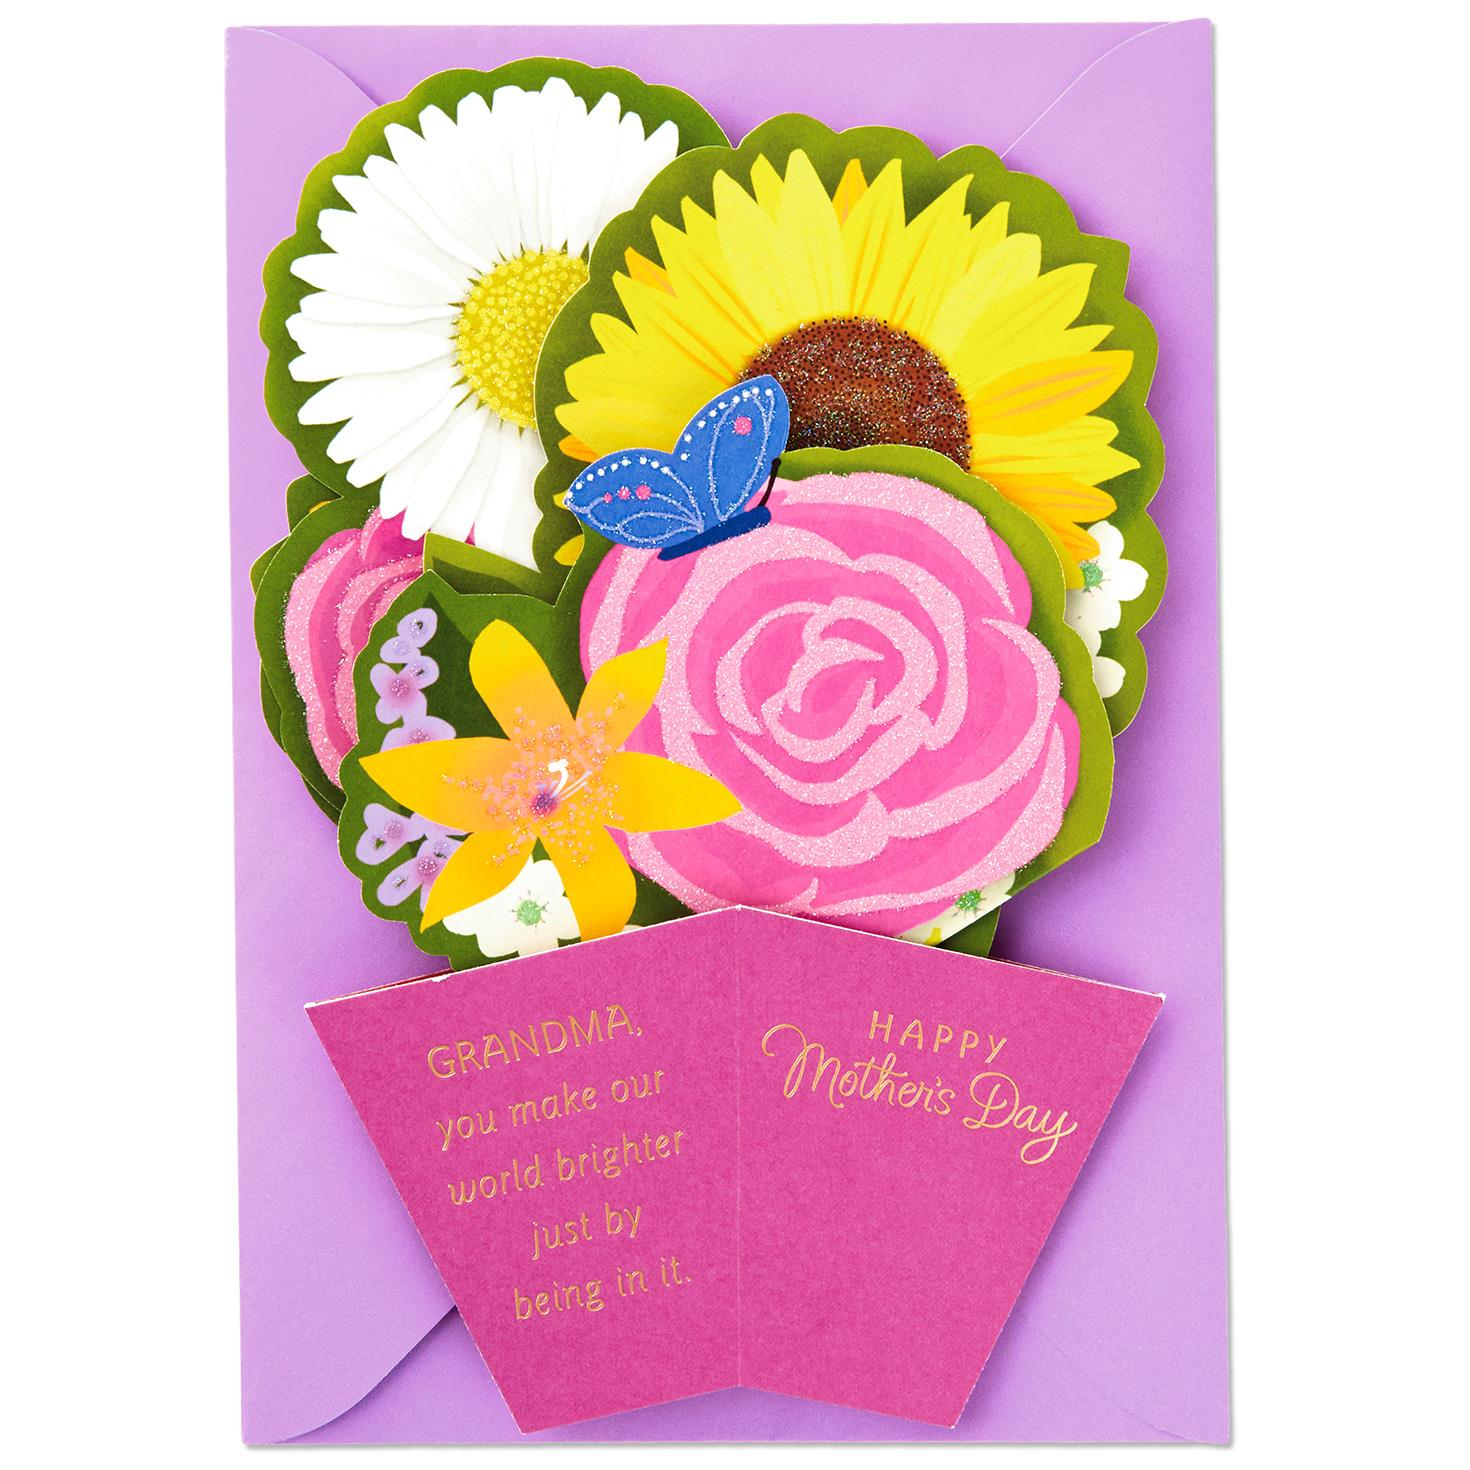 You Brighten The World Pop Up Mothers Day Card For Grandmother